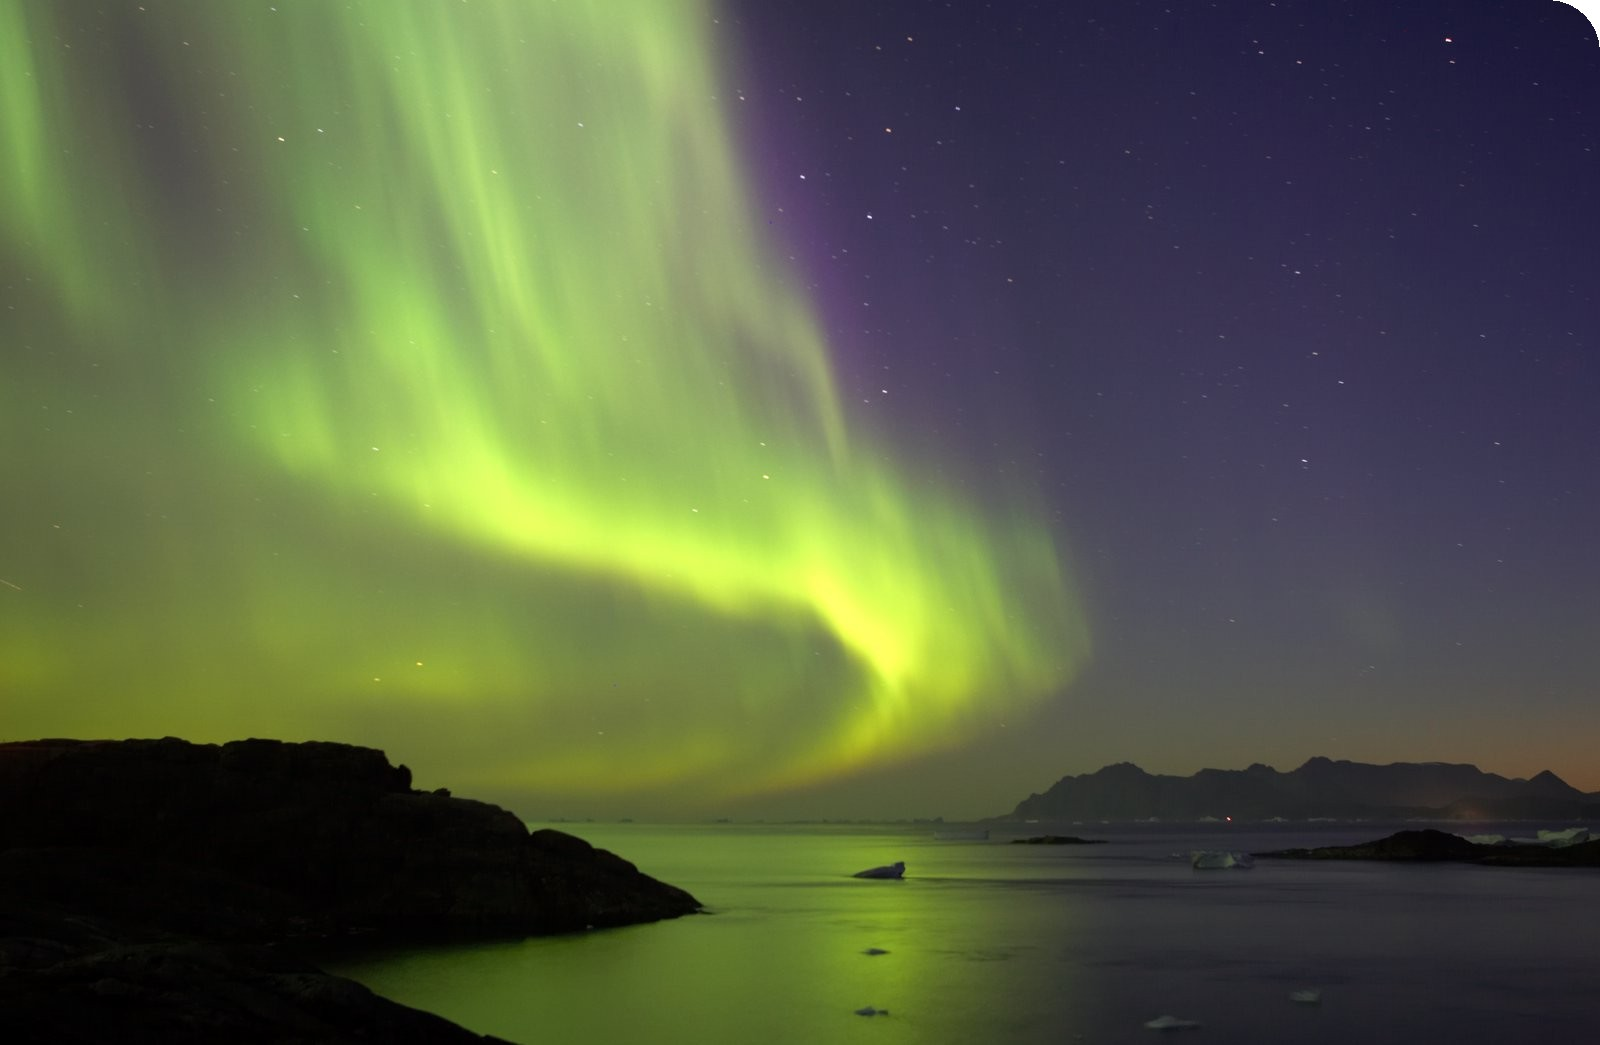 http://www.greenlandholiday.com/Portals/0/Photos/Northern%20Lights%20over%20the%20fjords.jpg